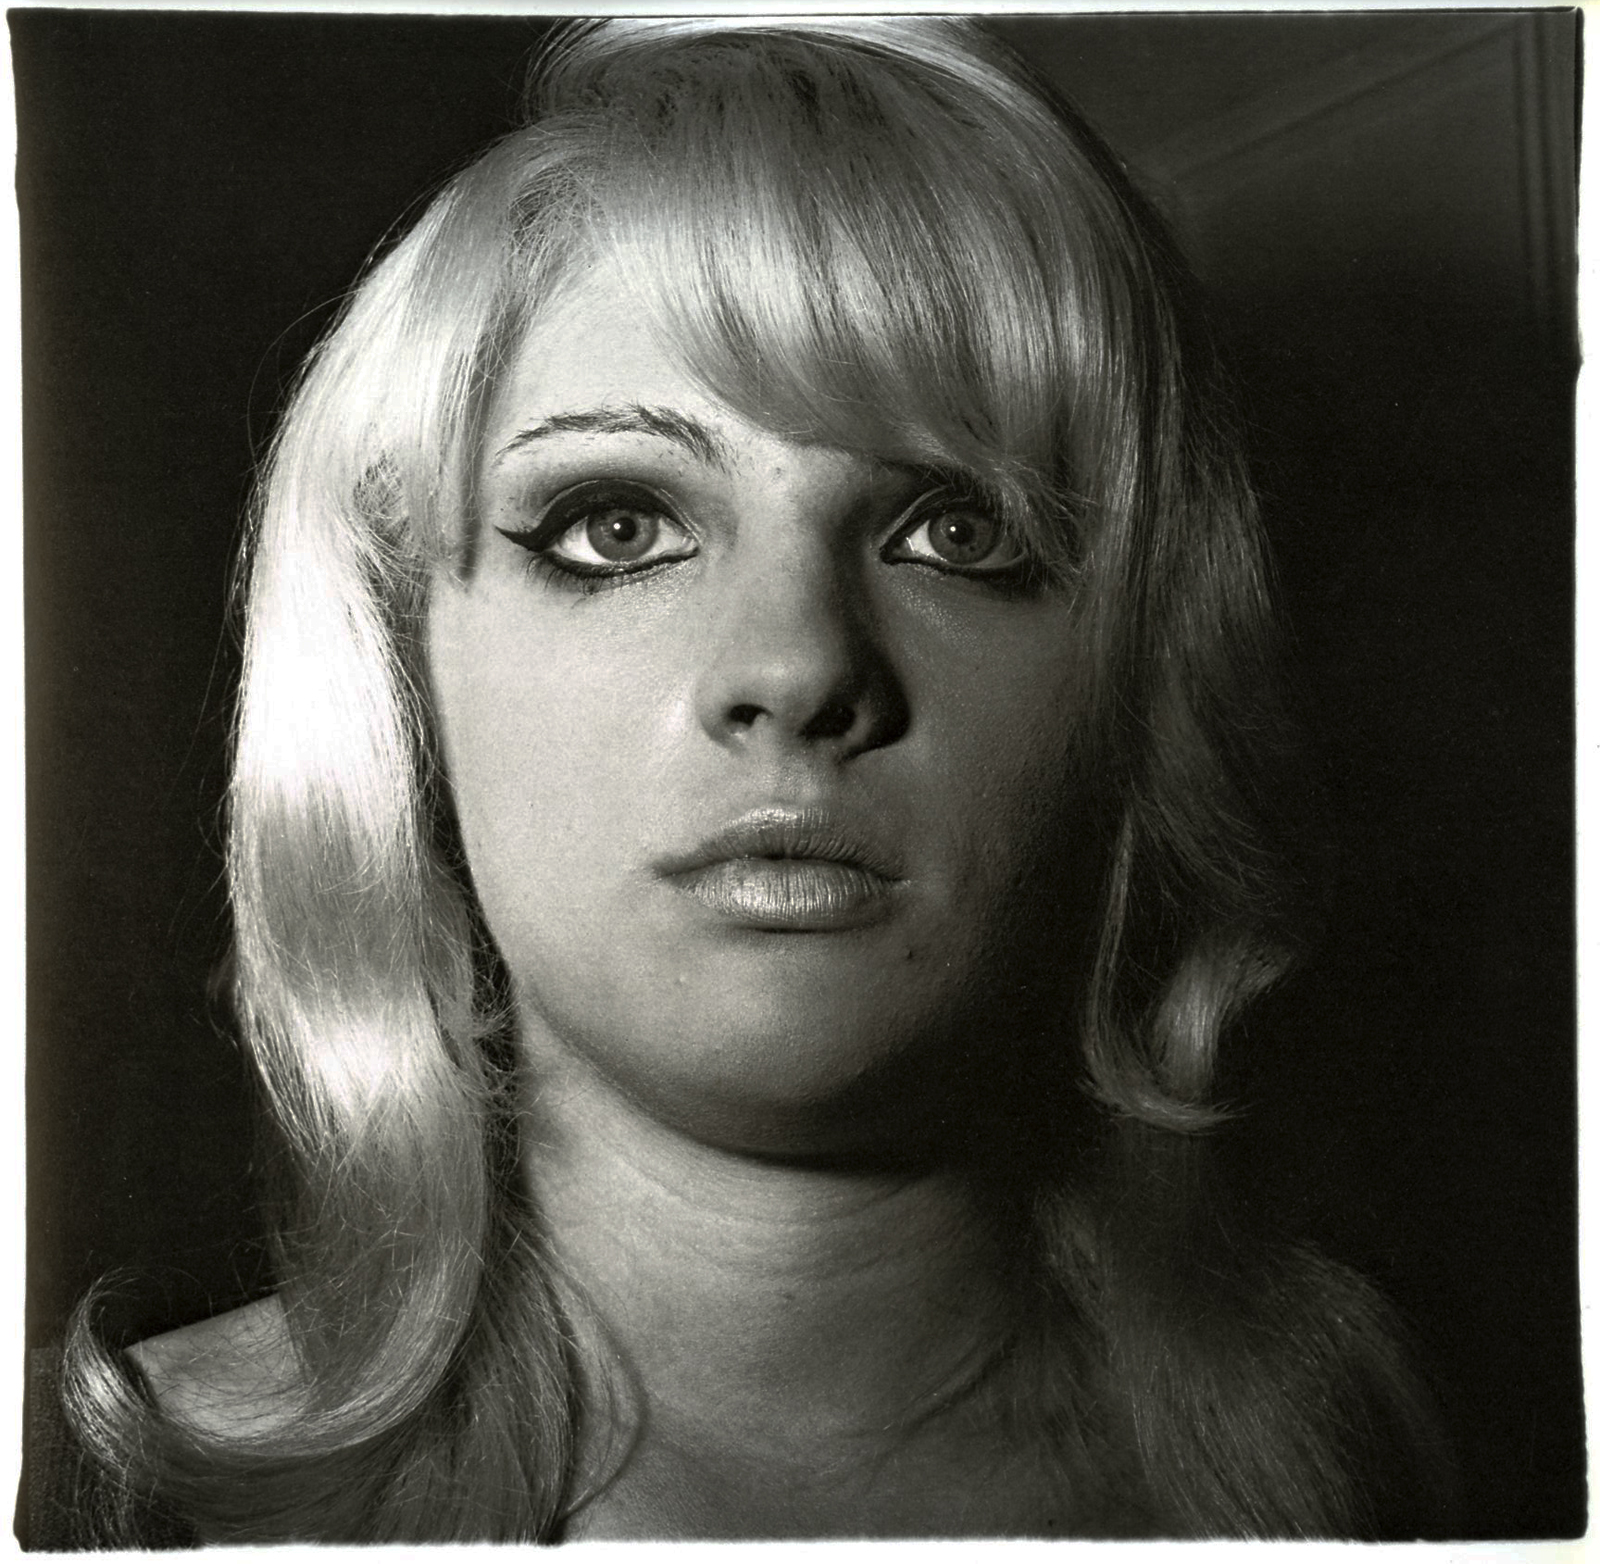 Diane Arbus photograph of a blonde woman with heavy eyeliner